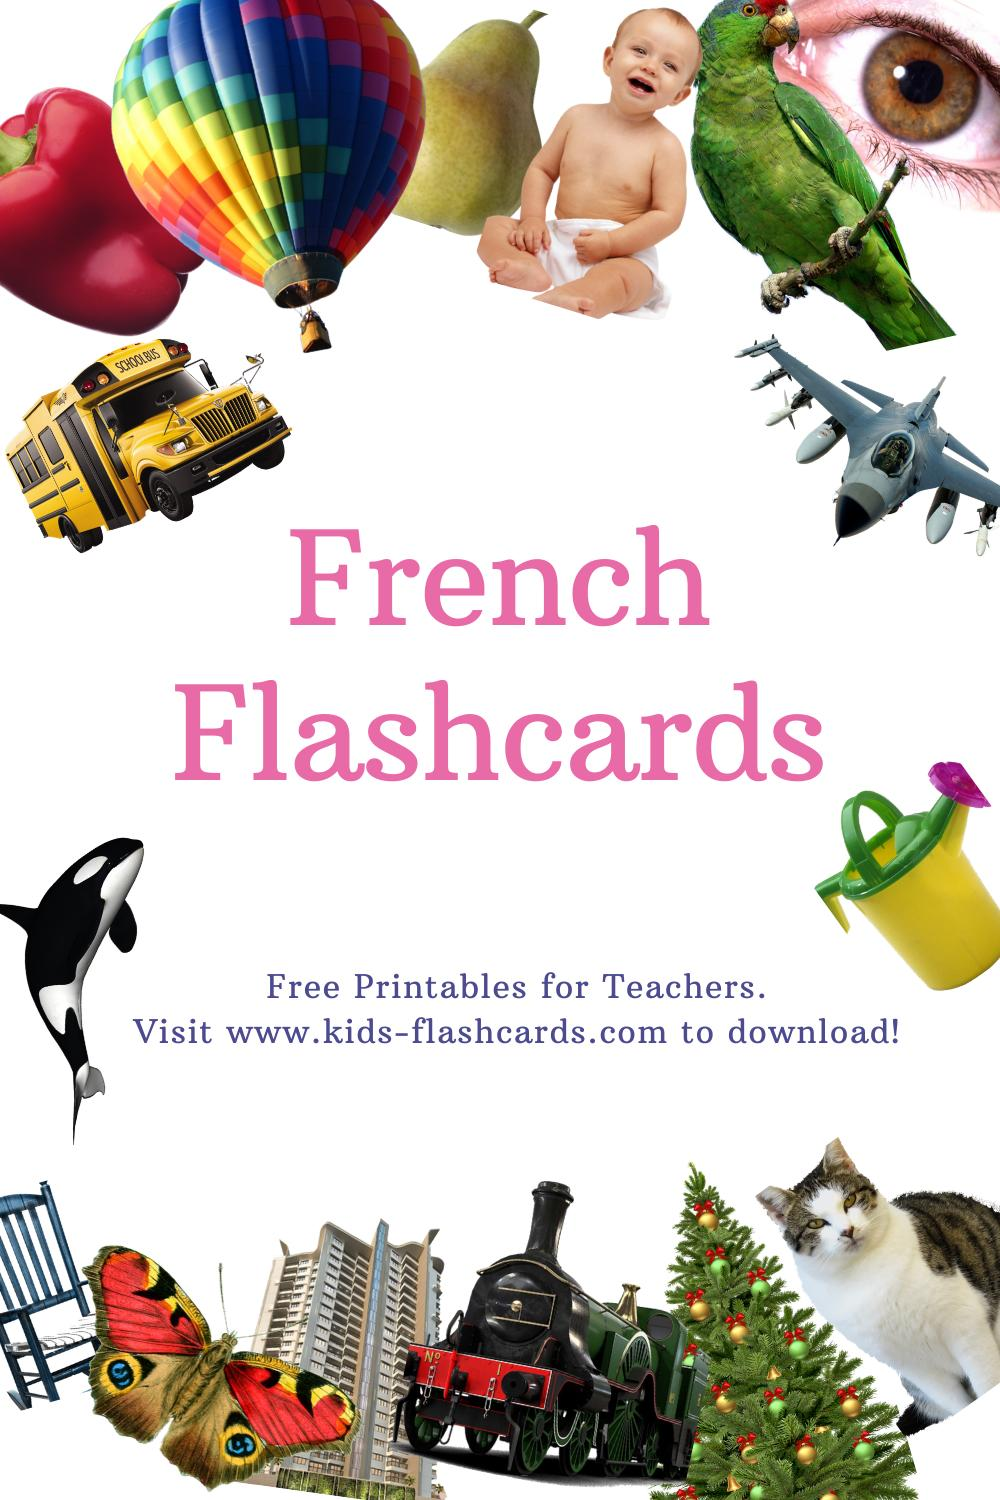 Worksheets to learn French language